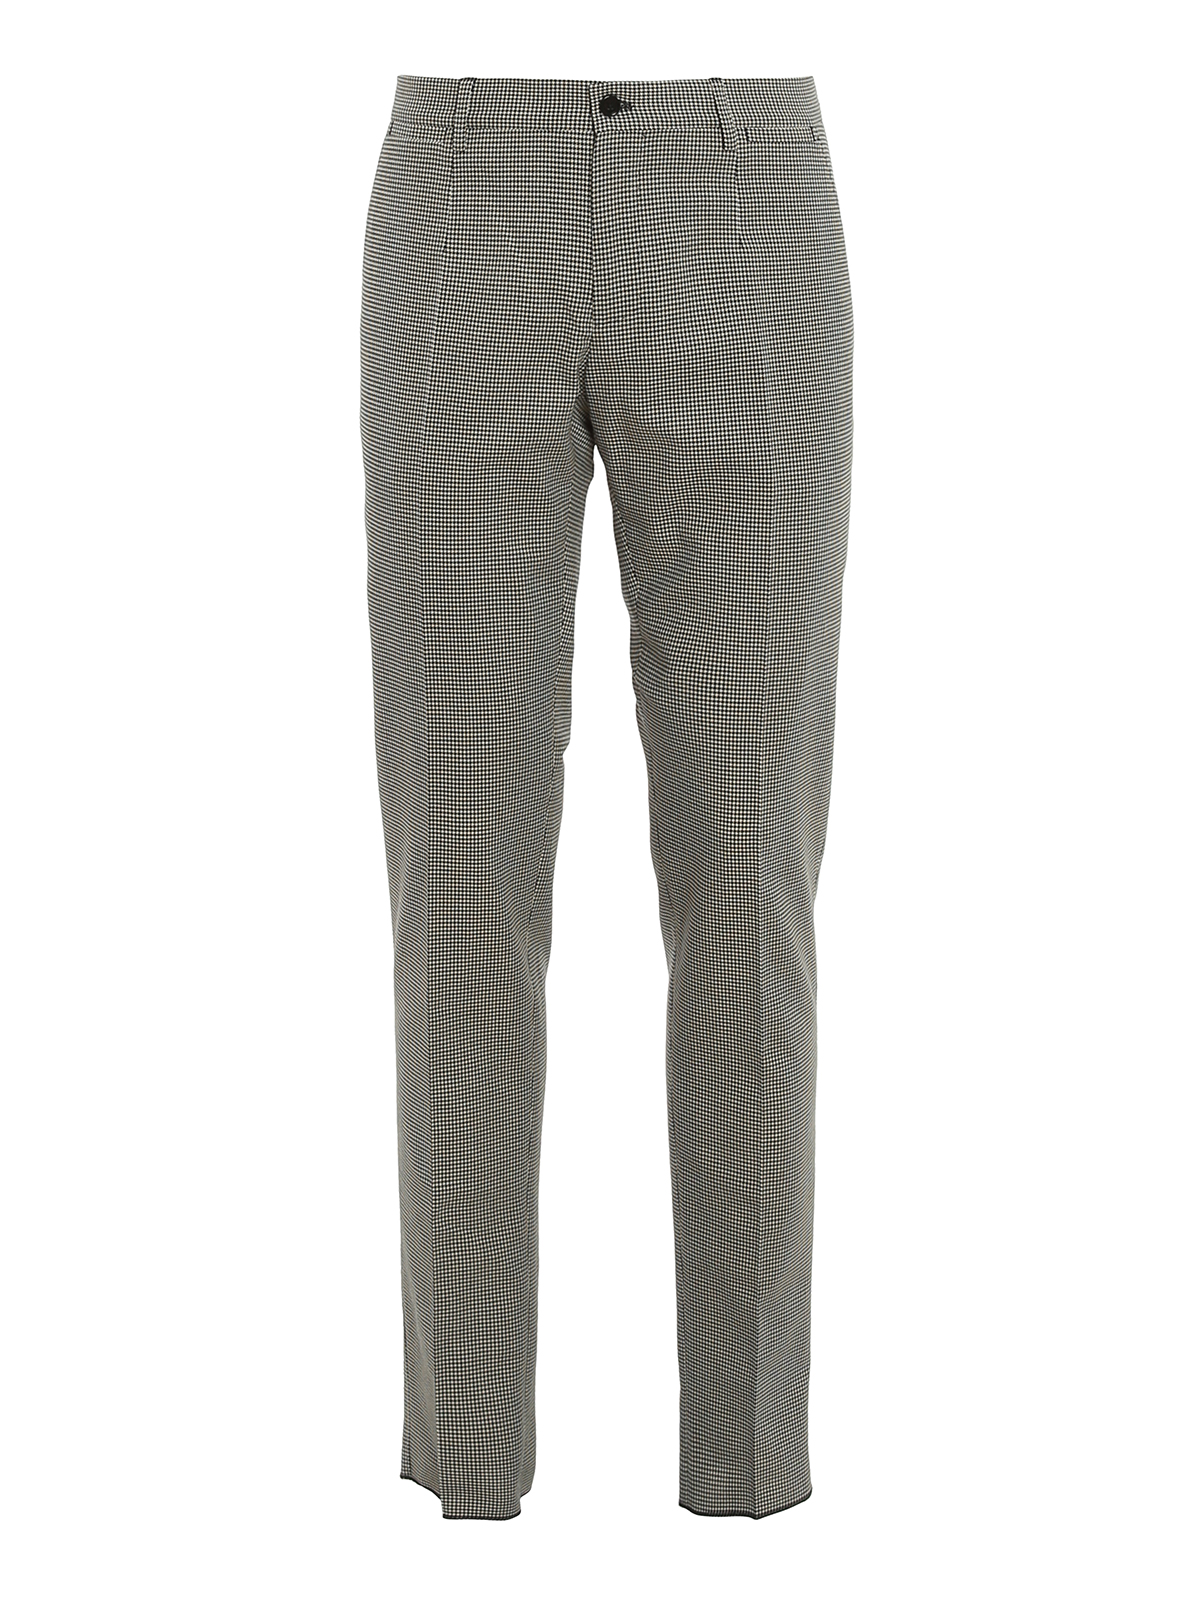 Dolce & Gabbana Cottons HOUNDSTOOTH PATTERNED PANTS